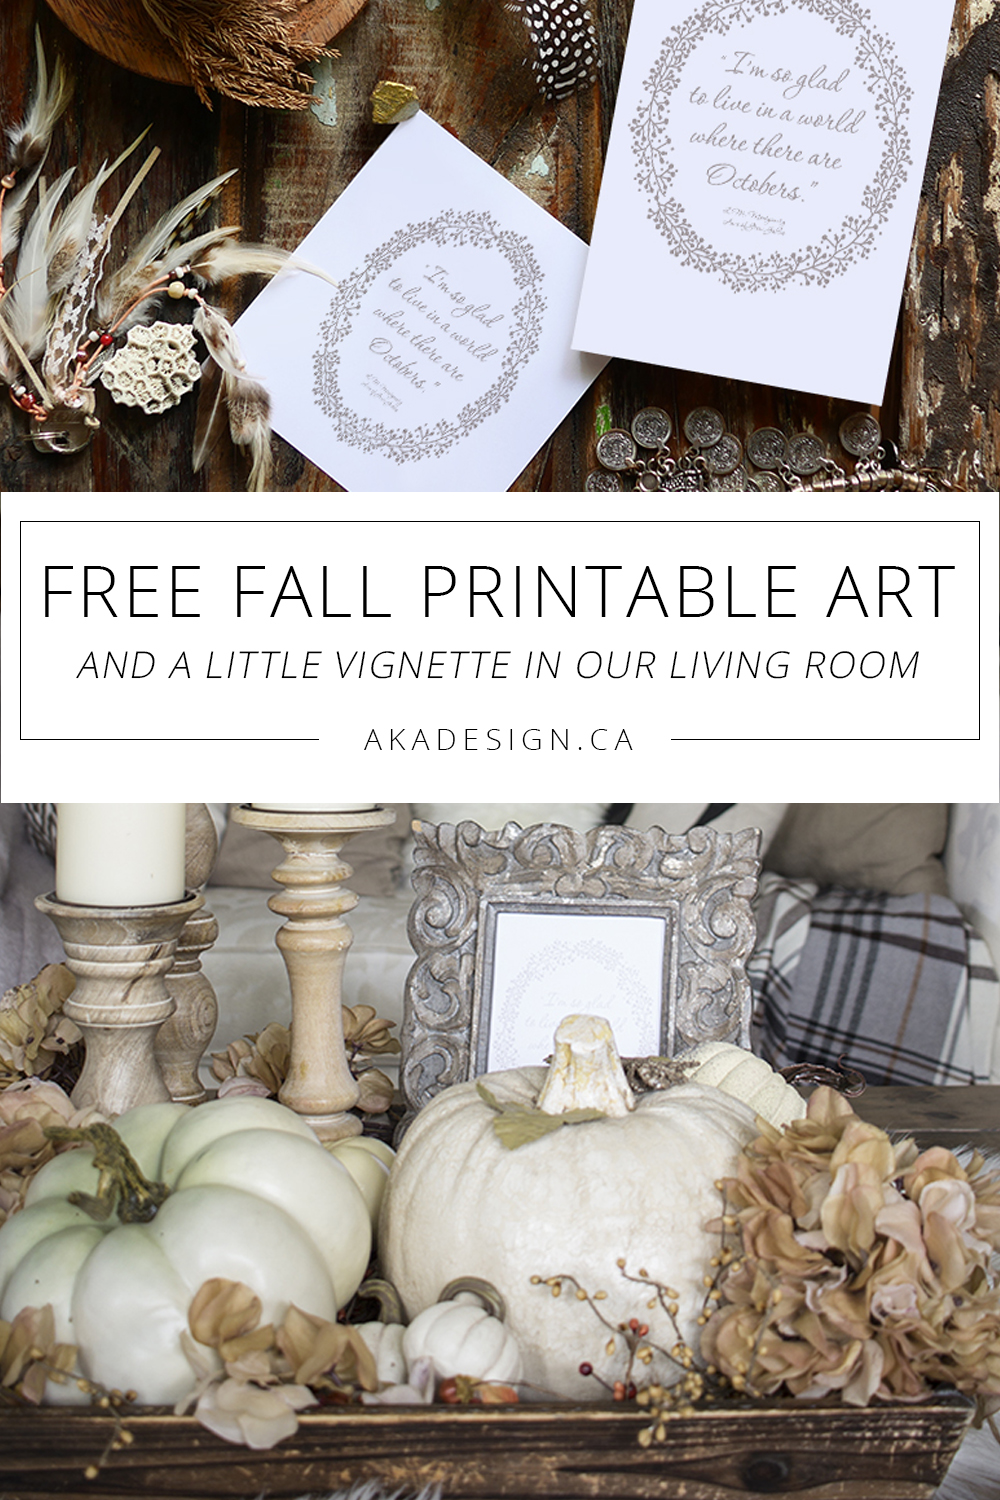 Free Fall Printable Art and a Little Vignette in Our Living Room